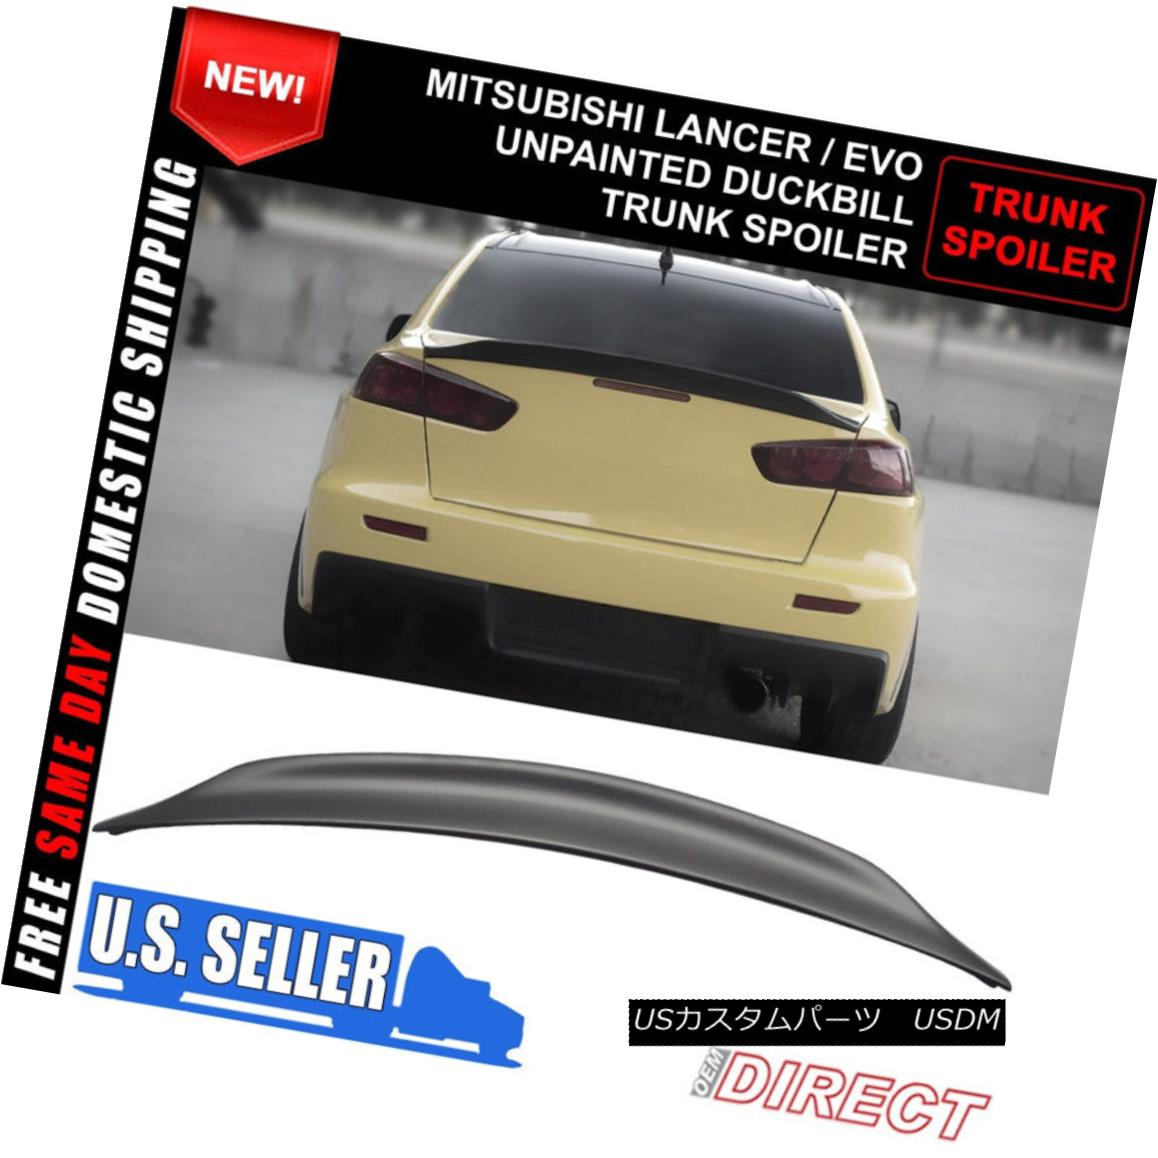 エアロパーツ 08-17 Mitsubishi Lancer EVO X 10 MR GSR JDM Duckbill RS ABS Rear Trunk Spoiler 08-17三菱ランサーEVO X 10 MR GSR JDMダックビルRS ABSリアトランク・スポイラー